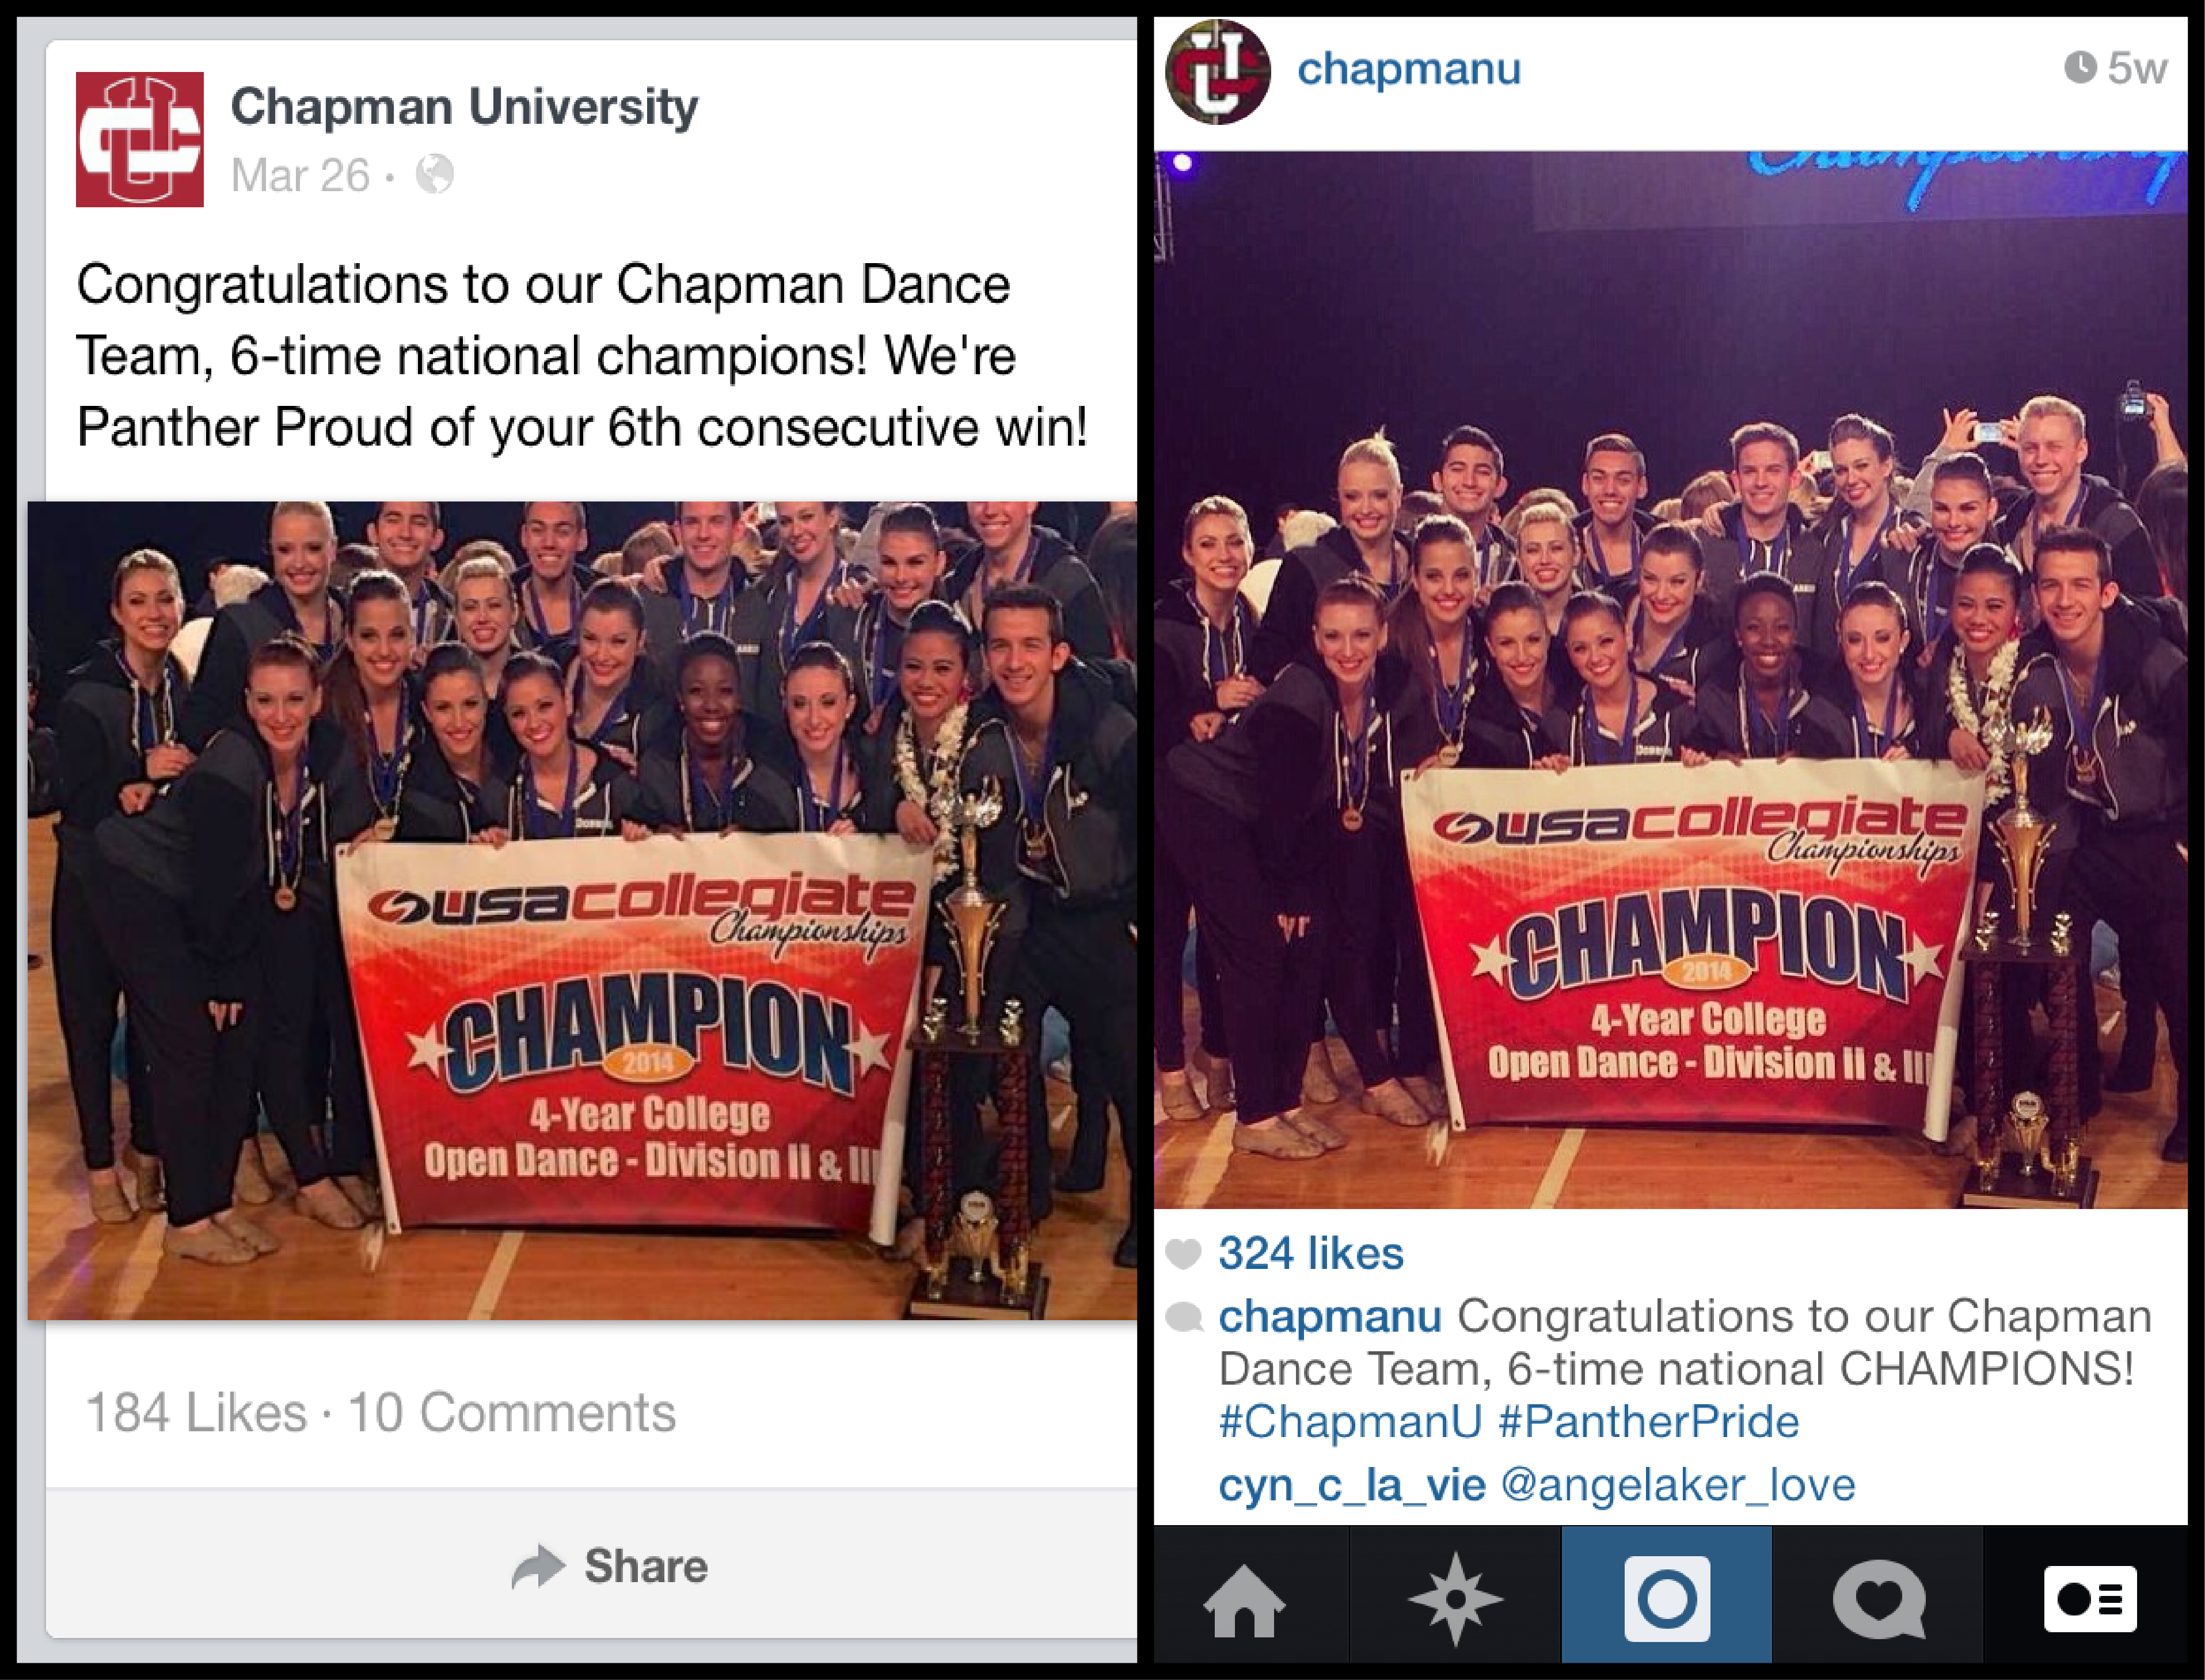 Screen shot of the Chapman Dance Team on Facebook and Instagram